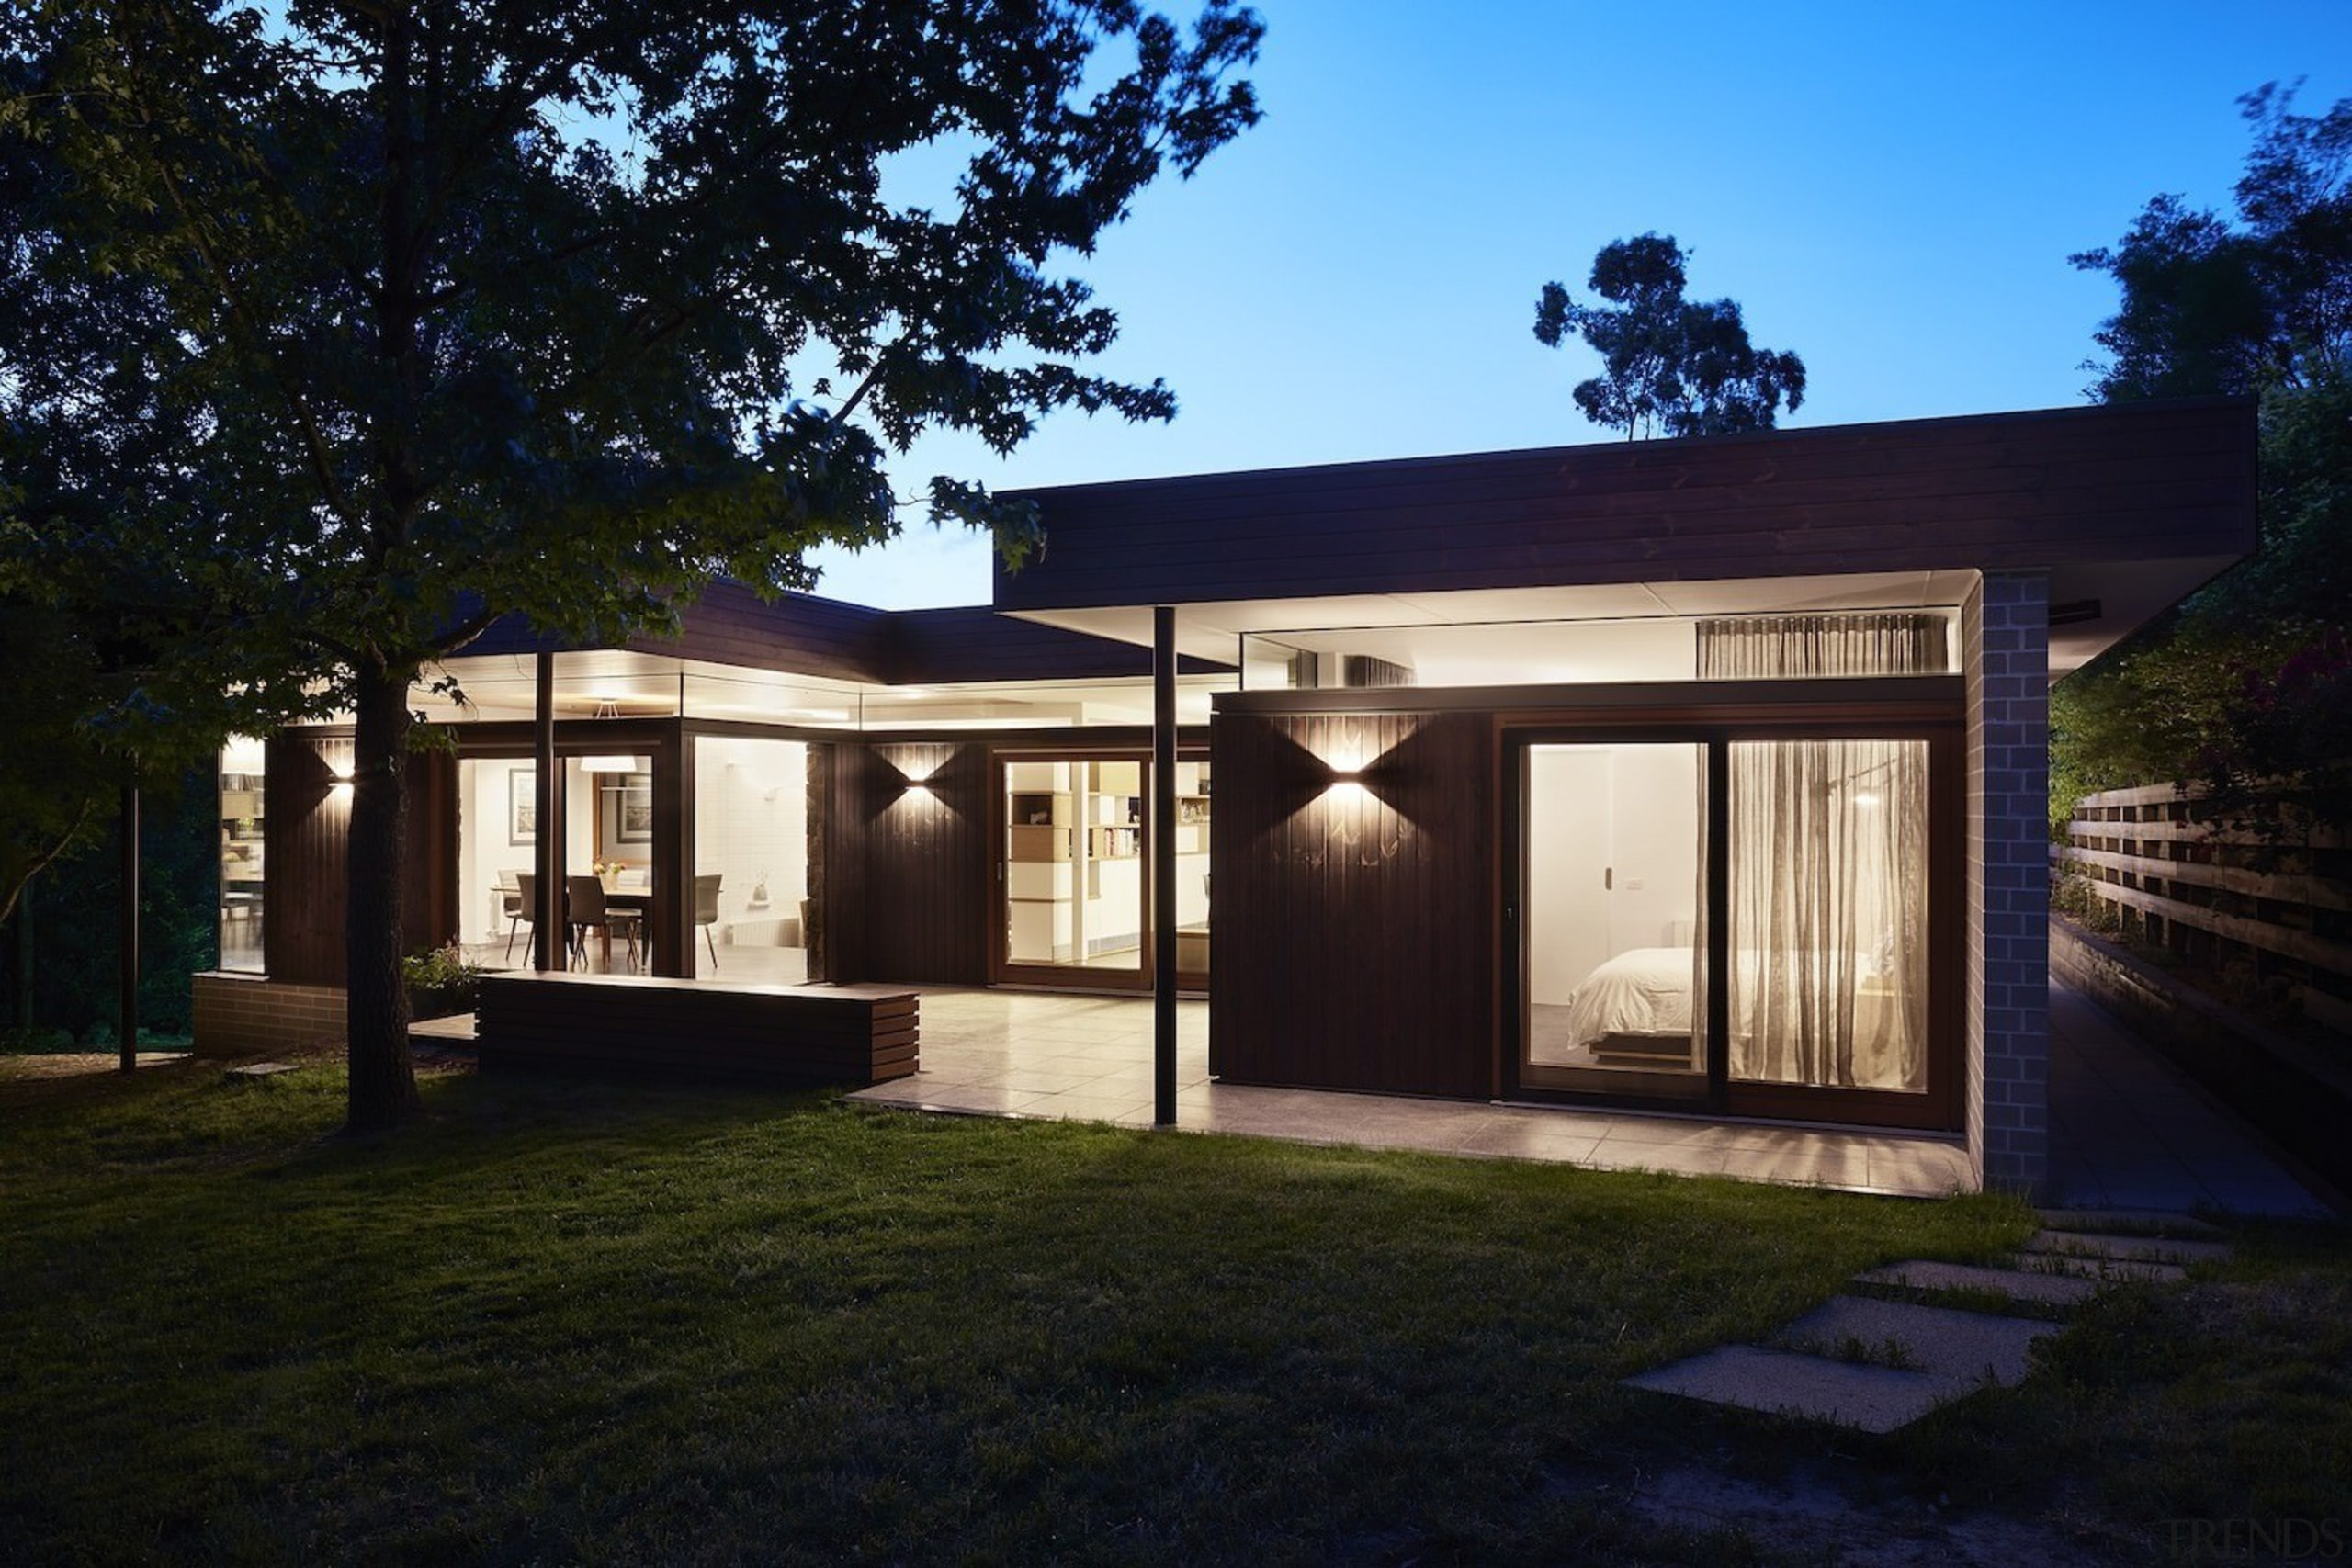 Architect: Architect: Steffen Welsch ArchitectsPhotography: Rhiannon architecture, cottage, estate, facade, home, house, property, real estate, residential area, roof, shed, black